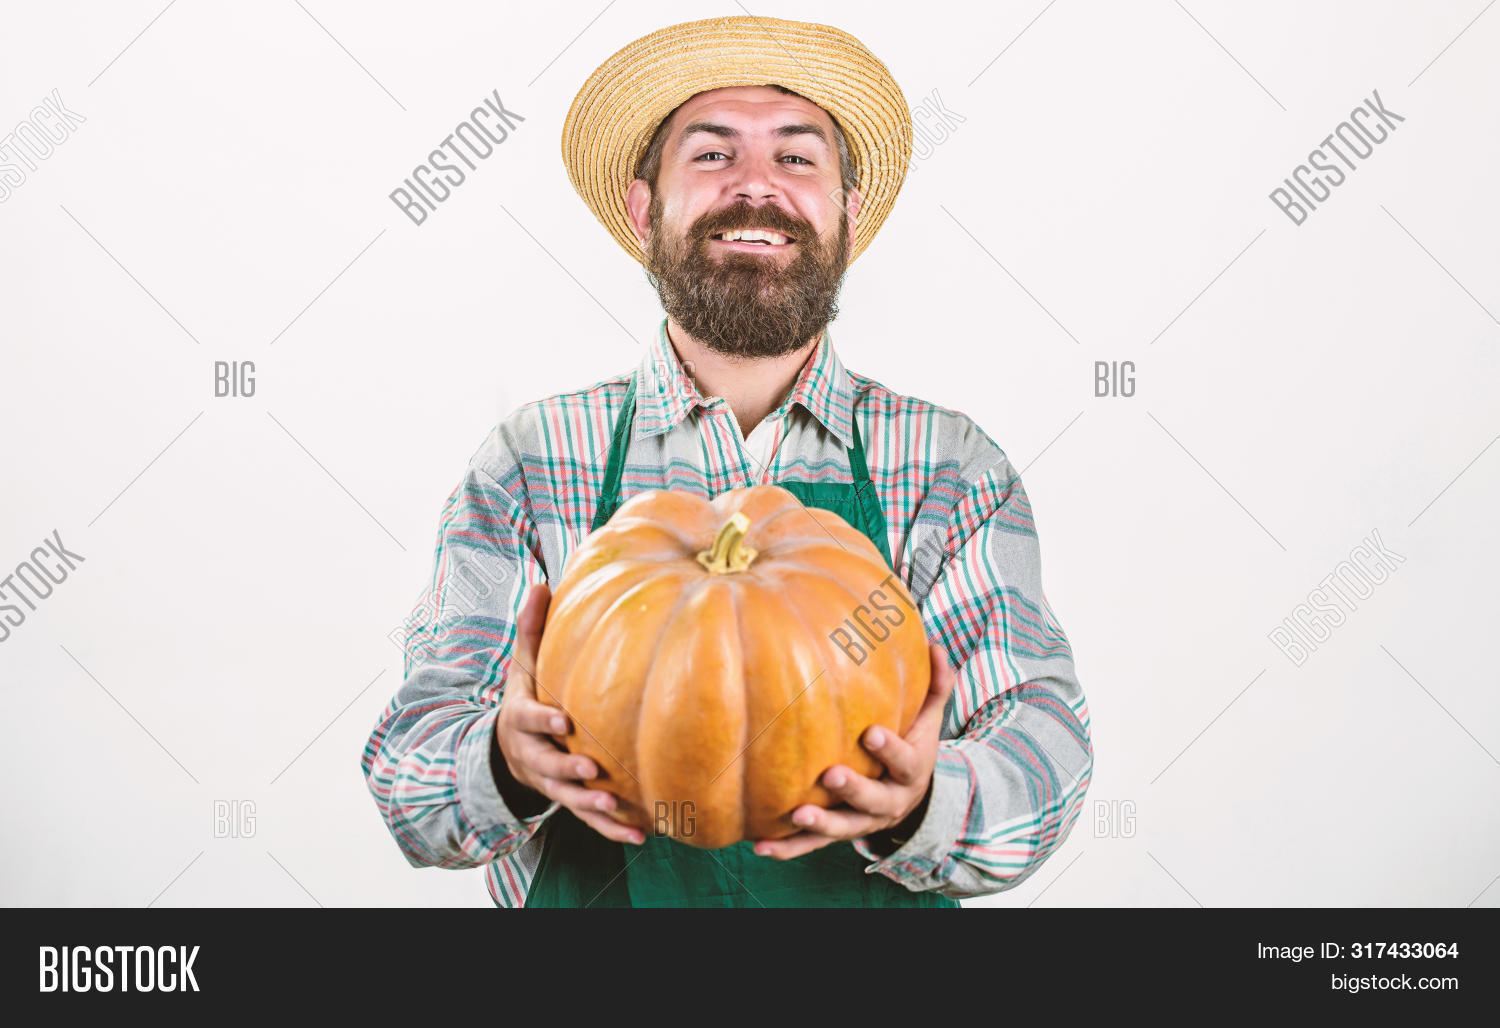 agronomy,autumn,beard,bearded,brutal,caucasian,chef,crop,detox,dieting,digital,earth,easter,factory,farm,farmer,farming,female,fertilizer,festival,field,food,fruit,garden,halloween,hand,happy,harvest,healthcare,hipster,man,market,mature,moustache,mustache,natural,organic,person,raw,restaurant,rich,rural,seasonal,spinach,technology,unshaven,useful,vegetable,vitamin